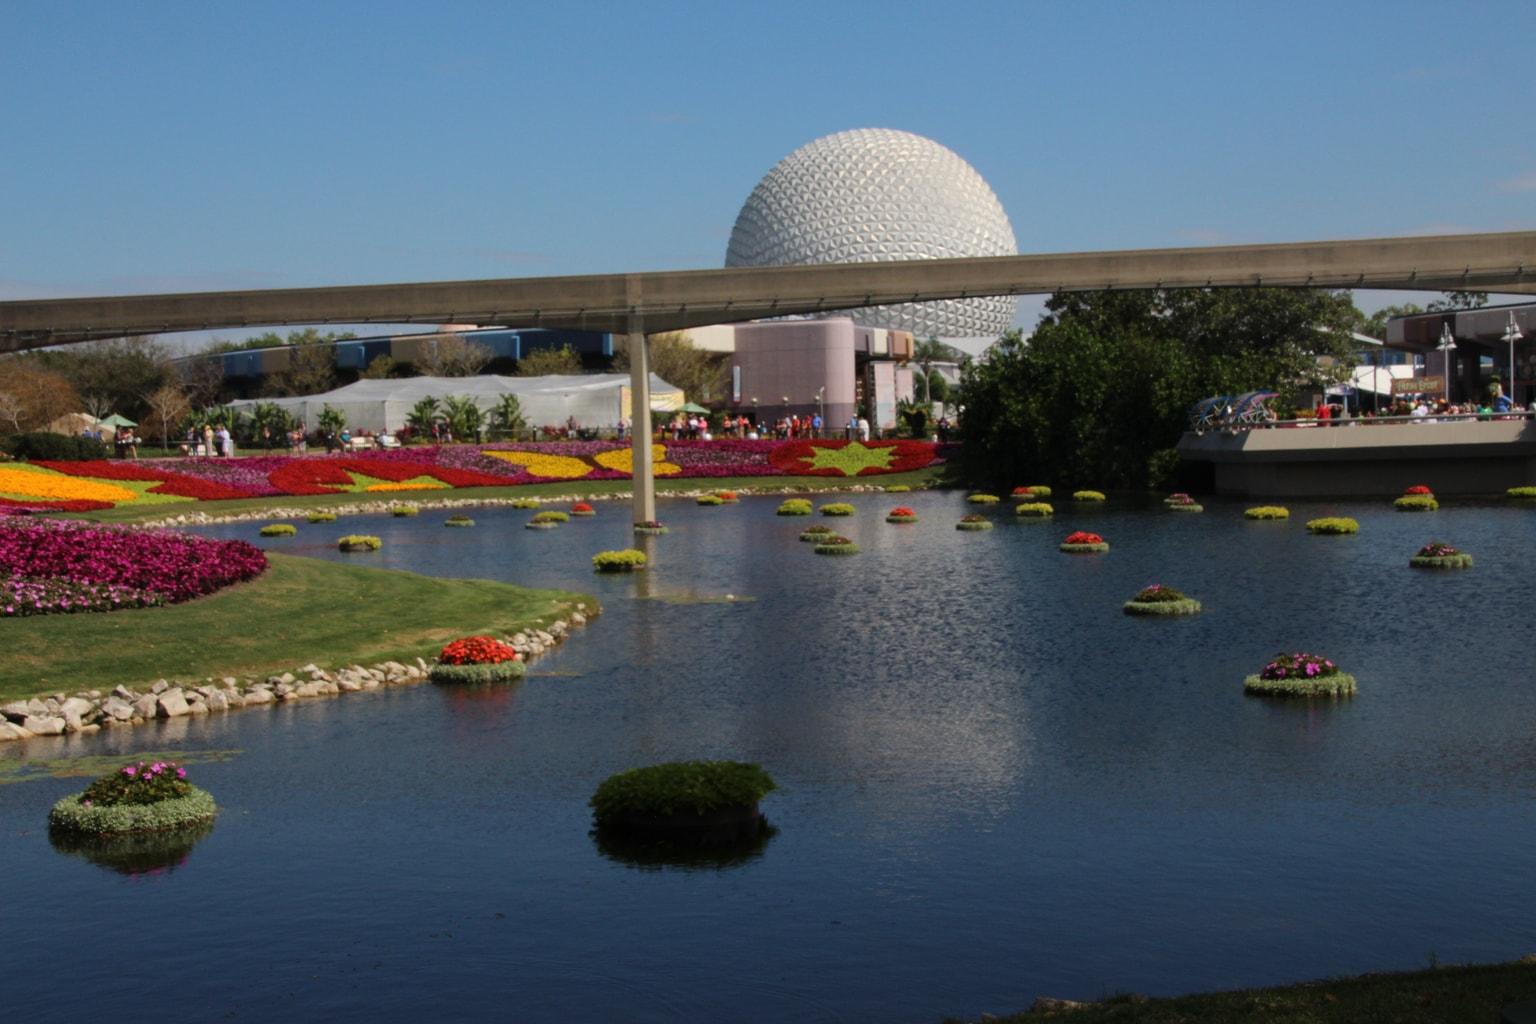 I've lost count at how many times I've been to the Epcot Flower and Garden Festival over the 20-plus years it's been going on, but it's a lot! And there's a good reason for that. This is a garden party that is a feast for your all your senses!